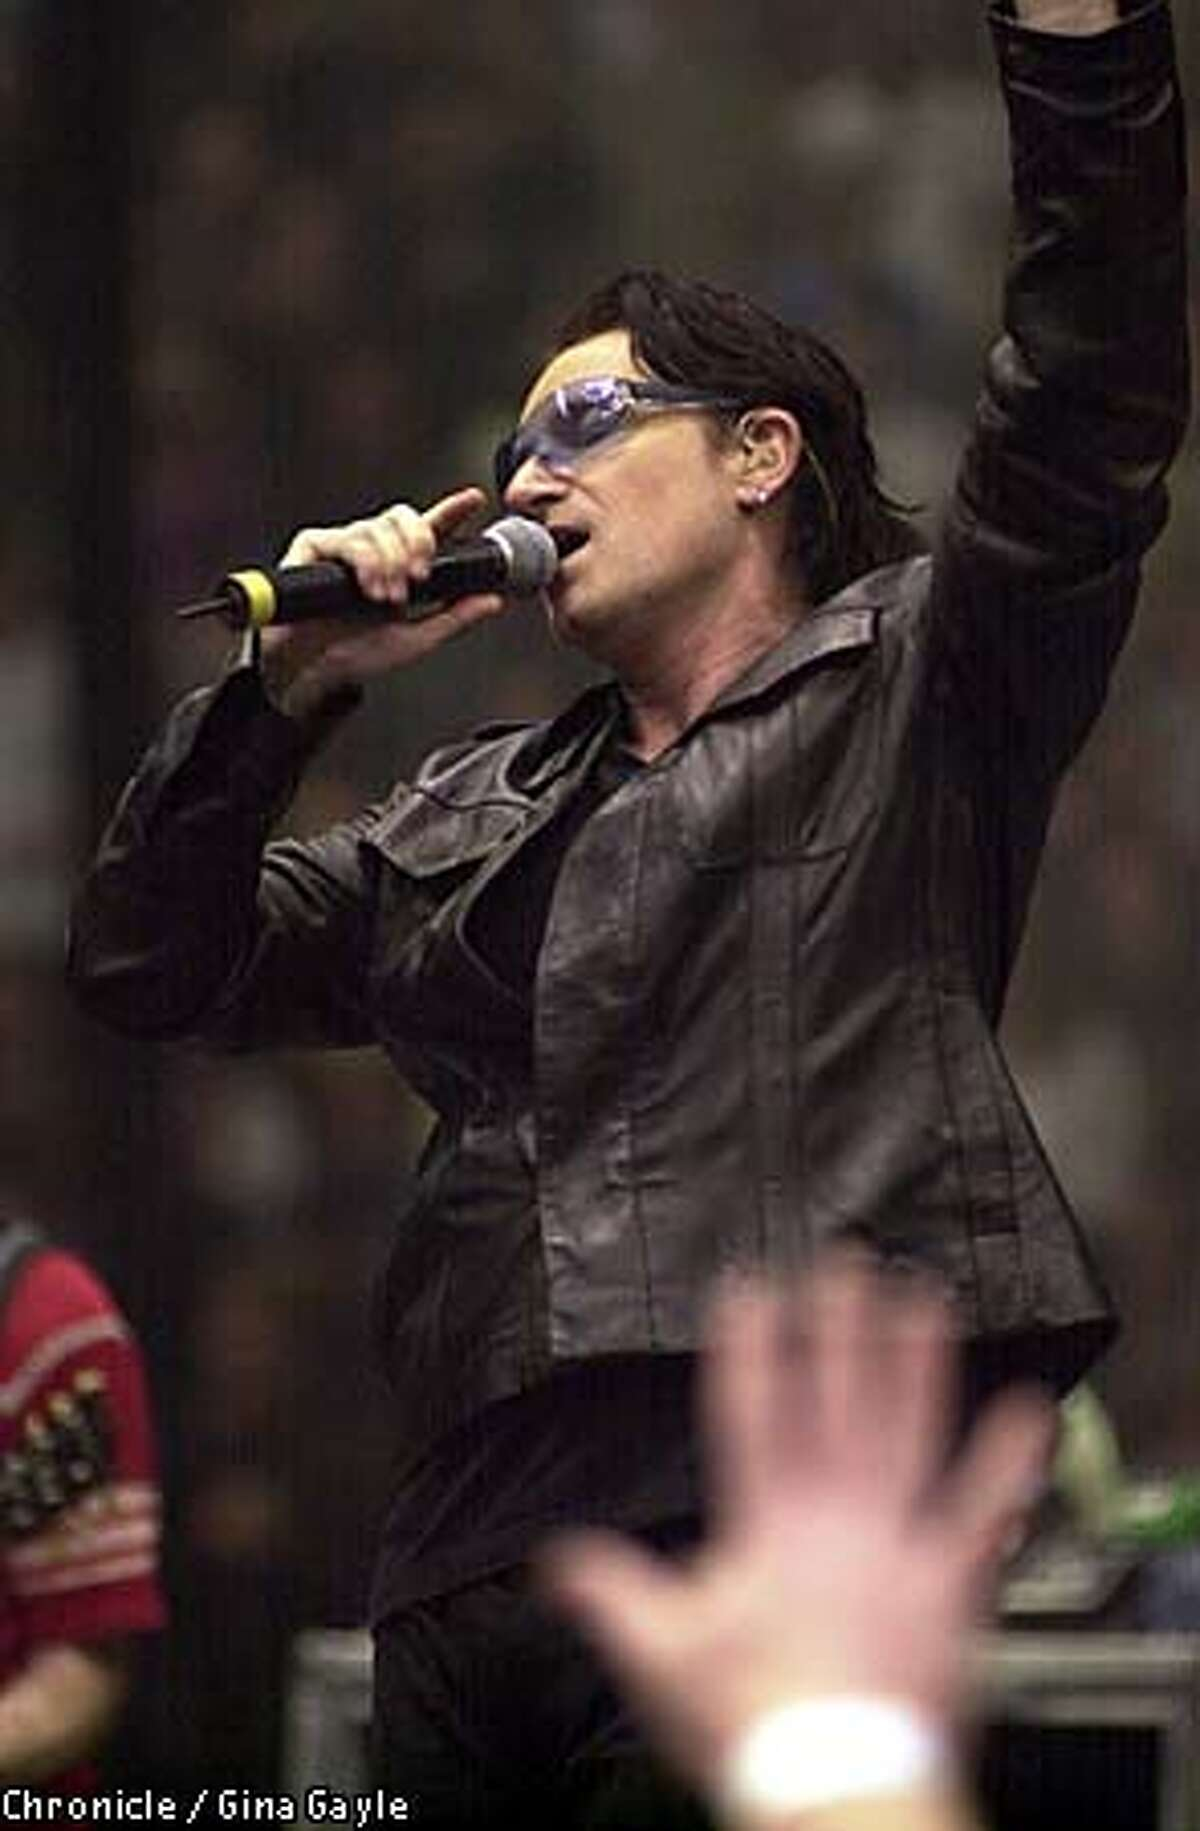 Bono of U2 performed at the Compaq Center in San Jose. Chronicle photo by Gina Gayle